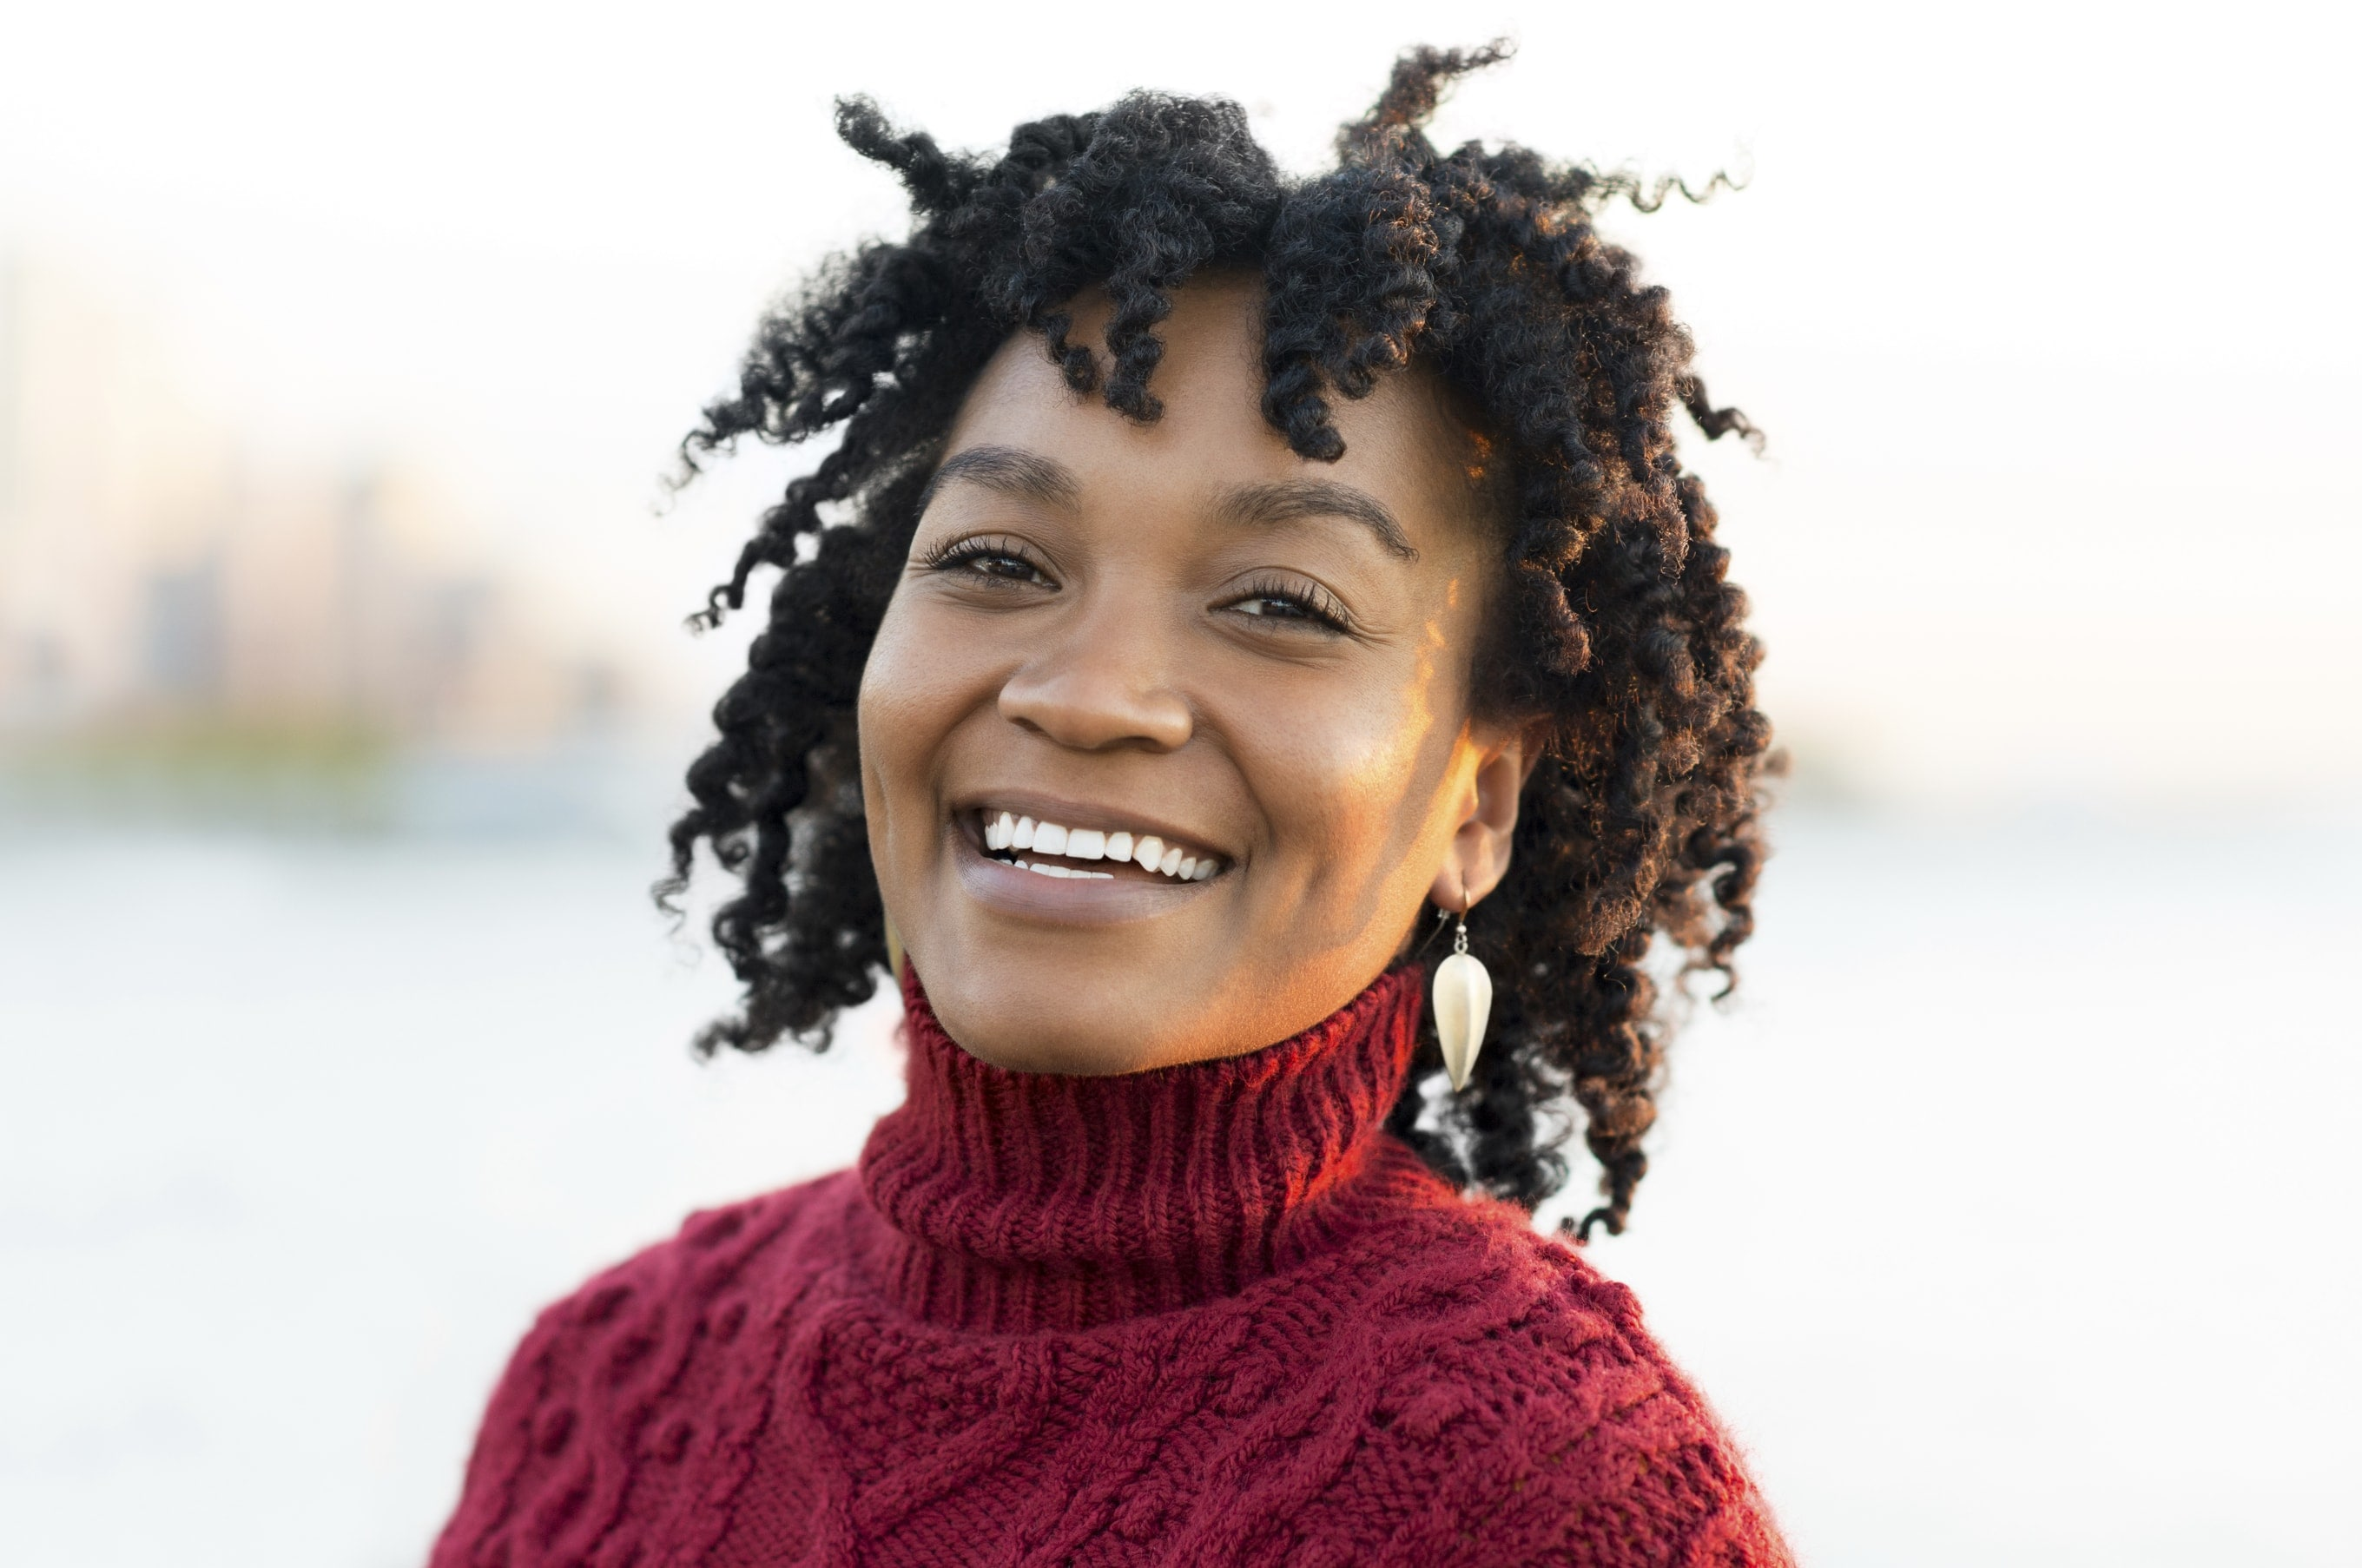 Natural afro hair: Black woman with natural afro hair twist out